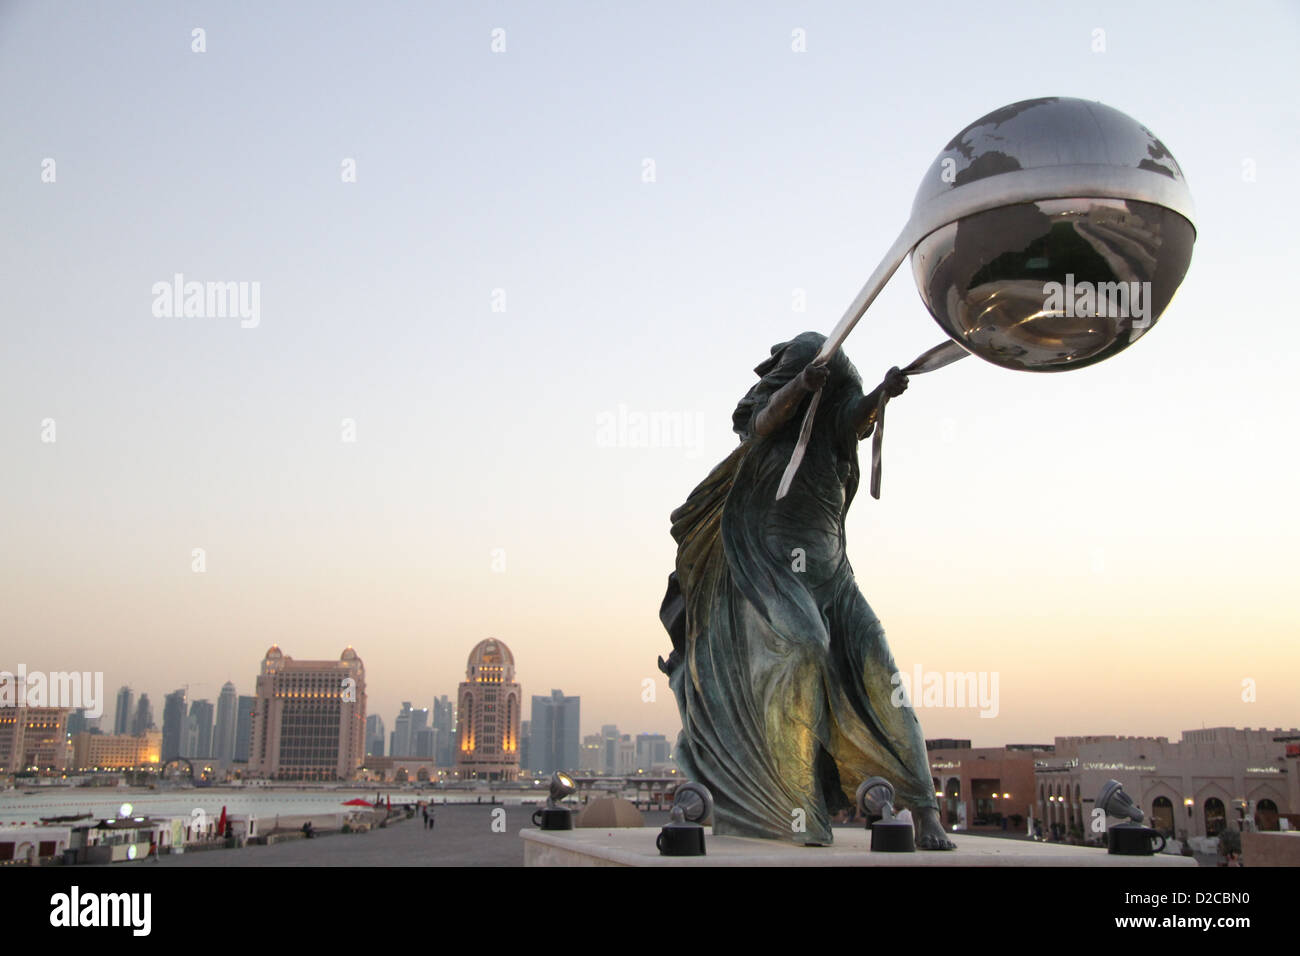 Force of Nature sculpture by Lorenzo Quinn at Katara Cultural Village with the Doha Hilton seen in the background - Stock Image